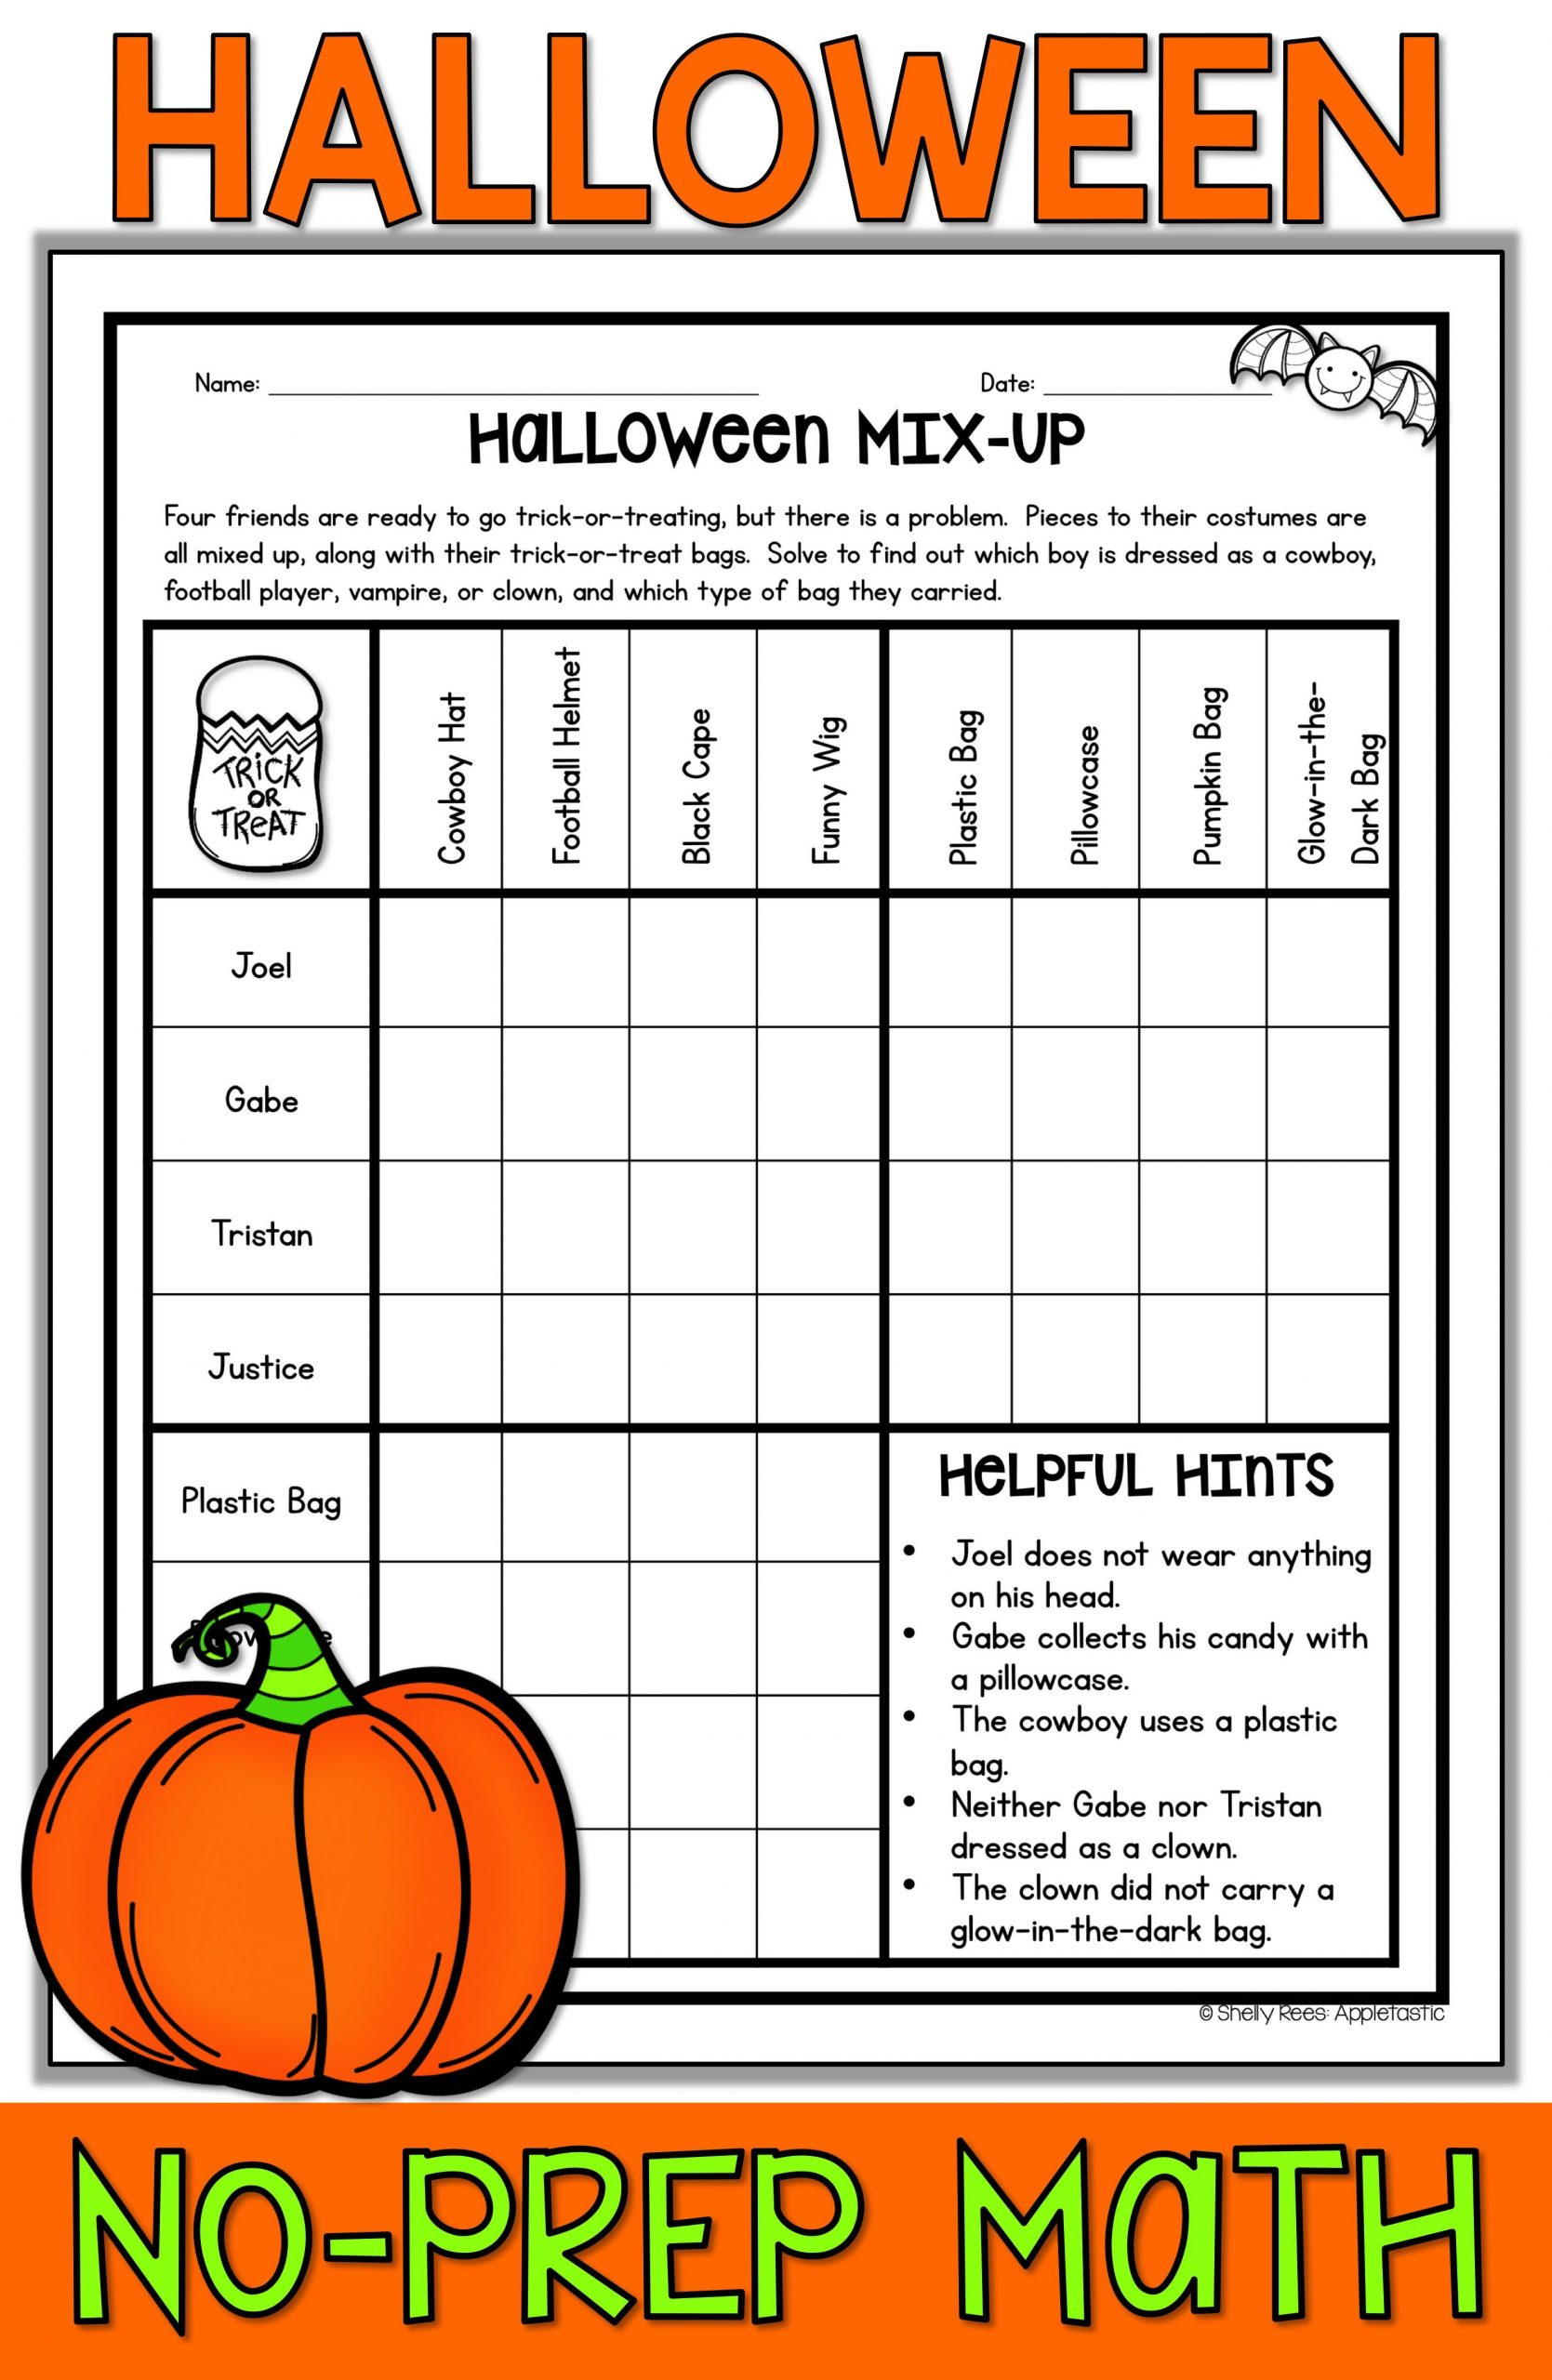 Halloween Math Worksheets Middle School Halloween Math Worksheets